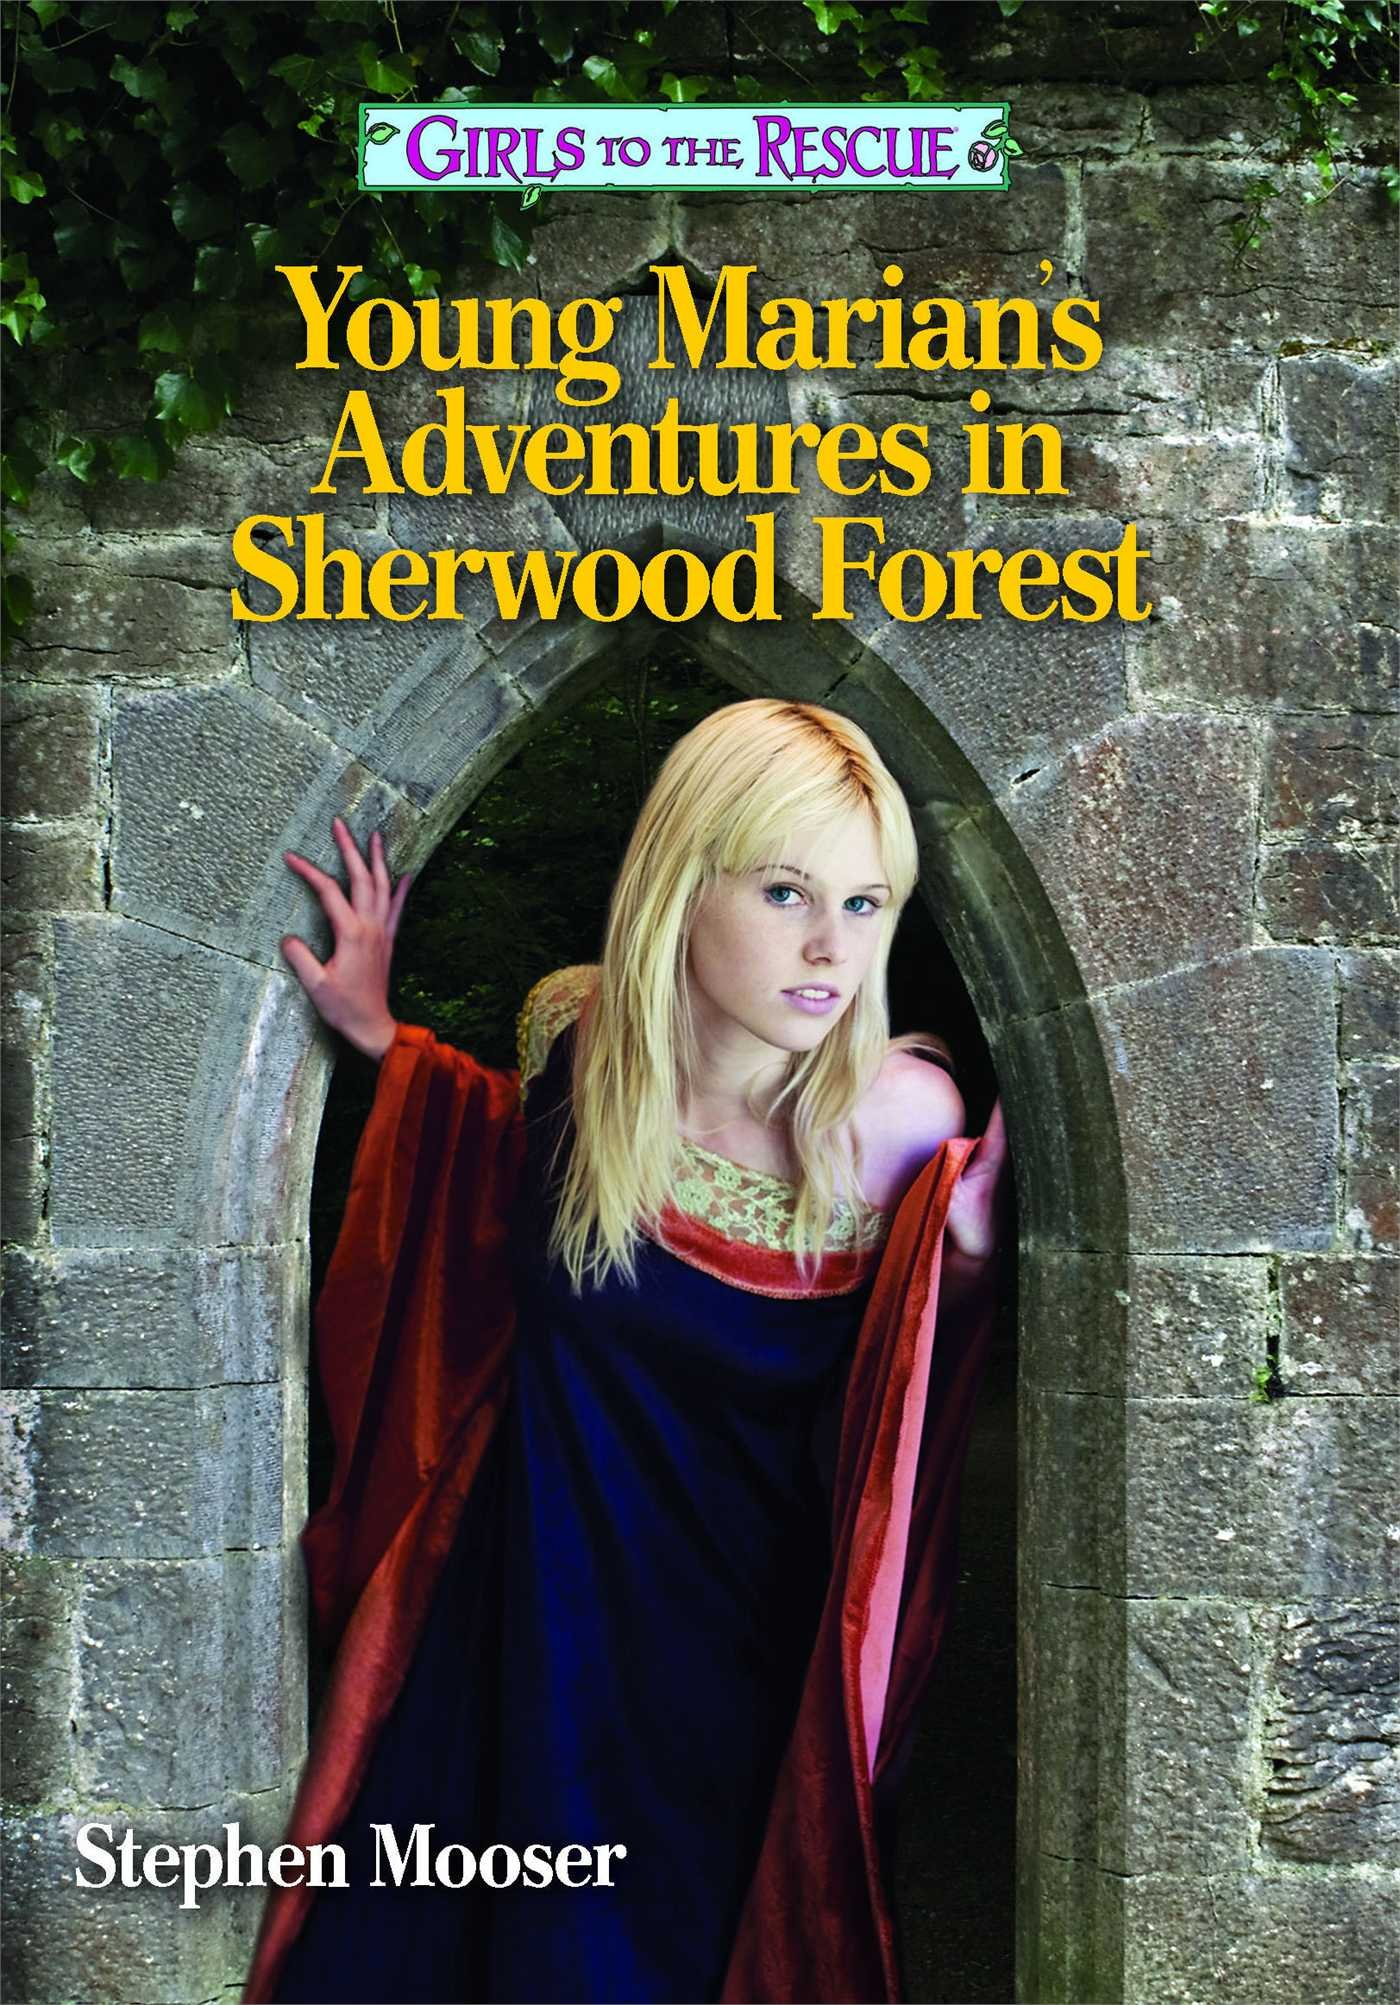 Download Girls to the Rescue―Young Marian's Adventures in Sherwood Forest: A Girls to the Rescue novel ebook